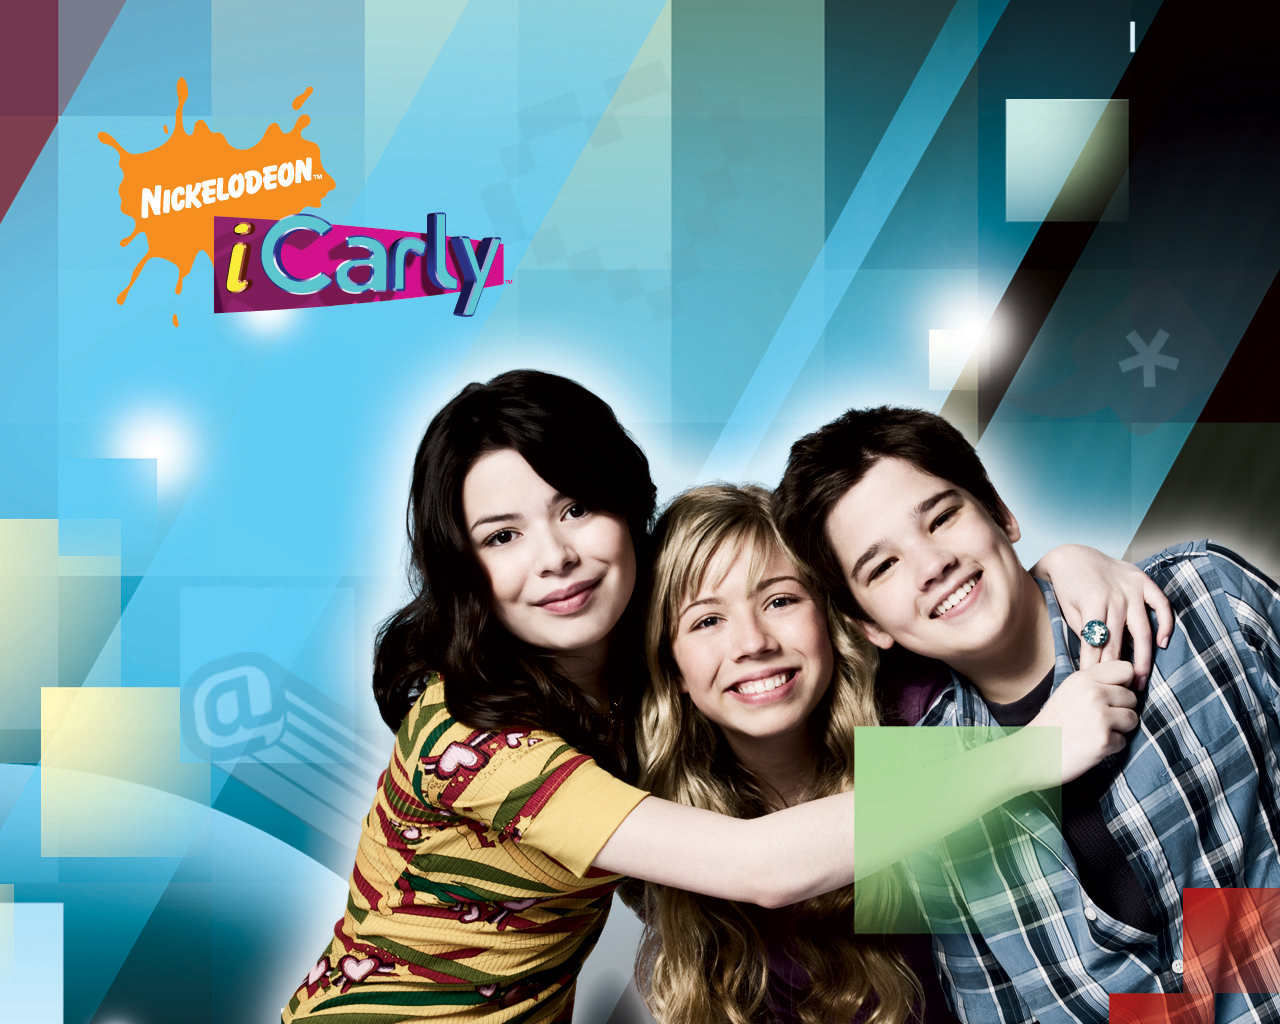 http://nicktown.at.ua/new_site/Miranda_Cosgrove_in_iCarly_Wallpaper_1_1280.jpg